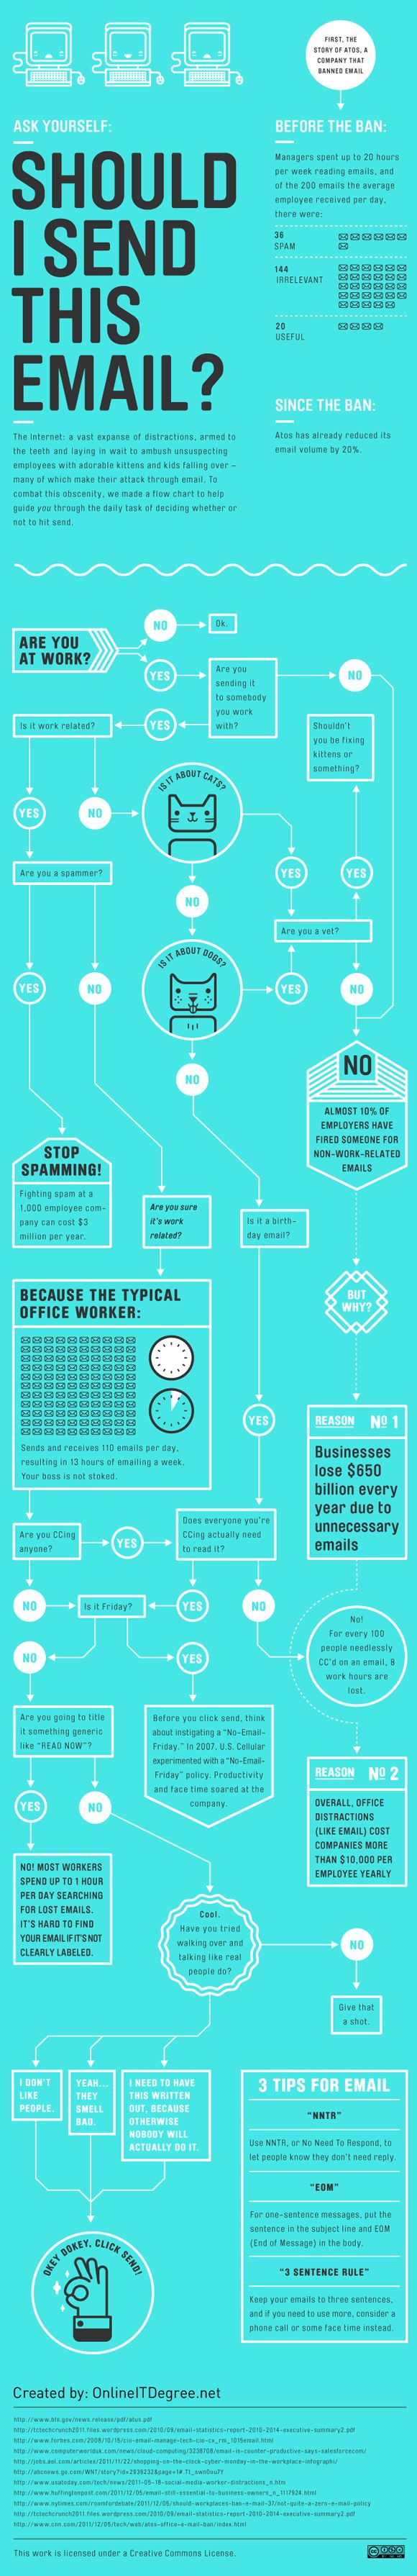 Should I Send This Email? #DidYouKnow businesses lose 650 billion every year due to unnecessary emails. #Infographic